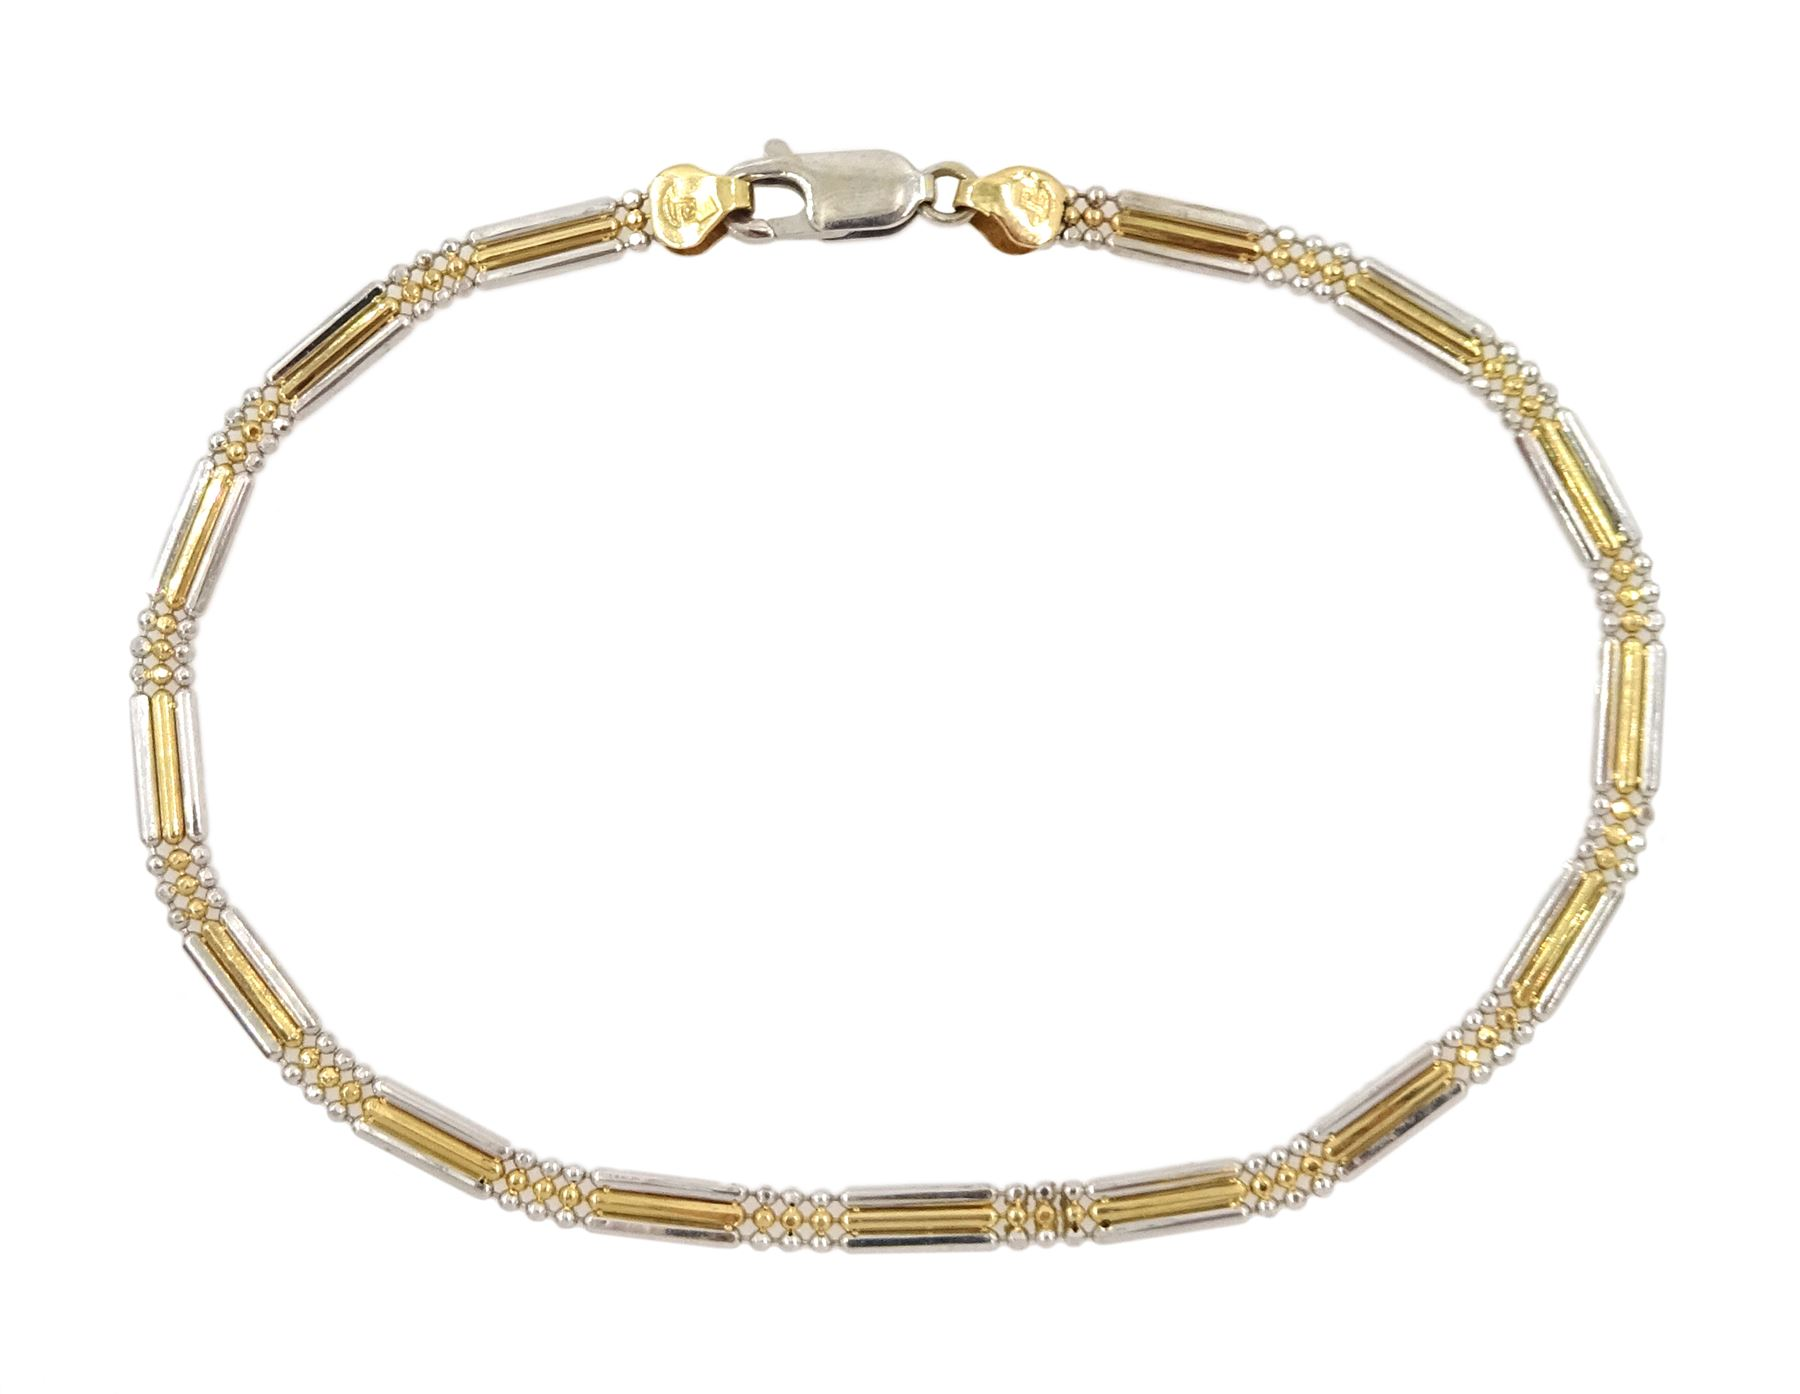 18ct white and yellow gold bead and rectangular link bracelet